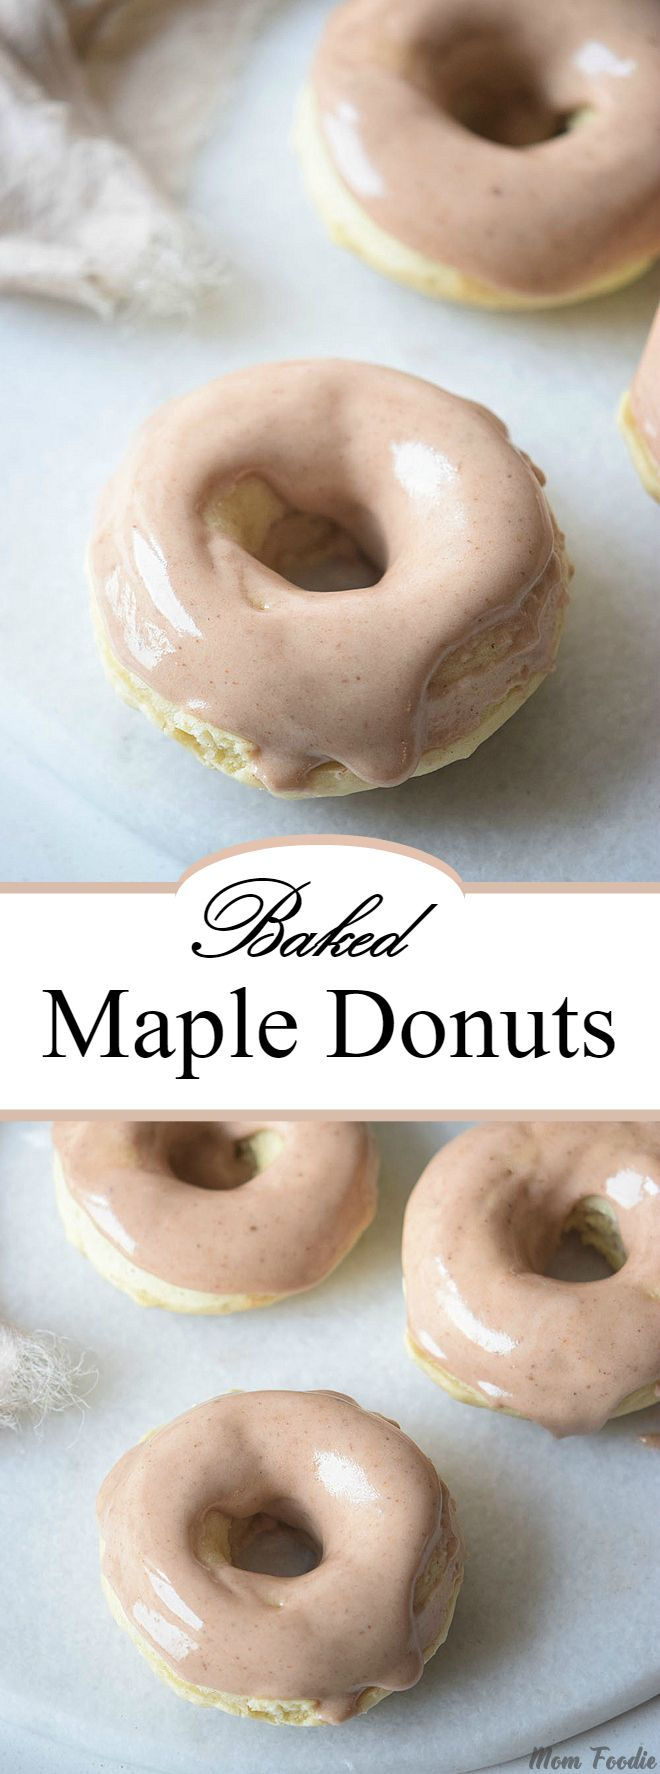 Baked Maple Donuts Recipe with Maple Glaze